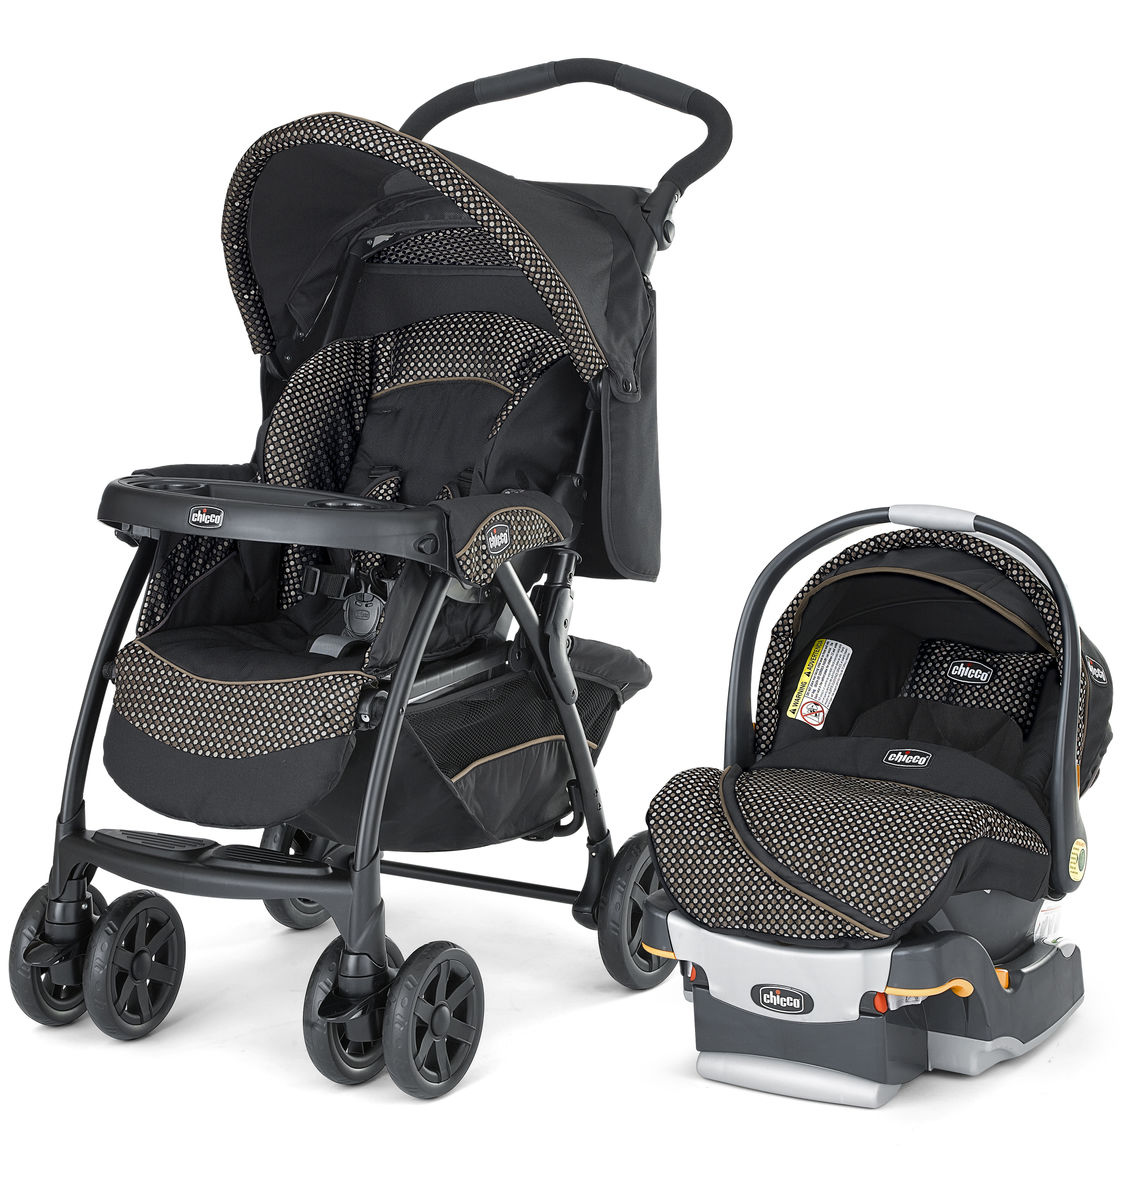 Chicco Minerale Travel System Reviews